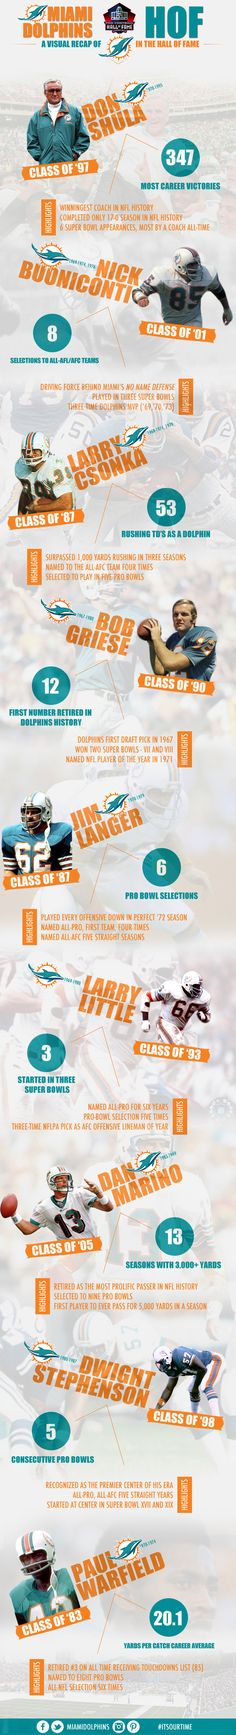 Dolphins In The Hall Of Fame